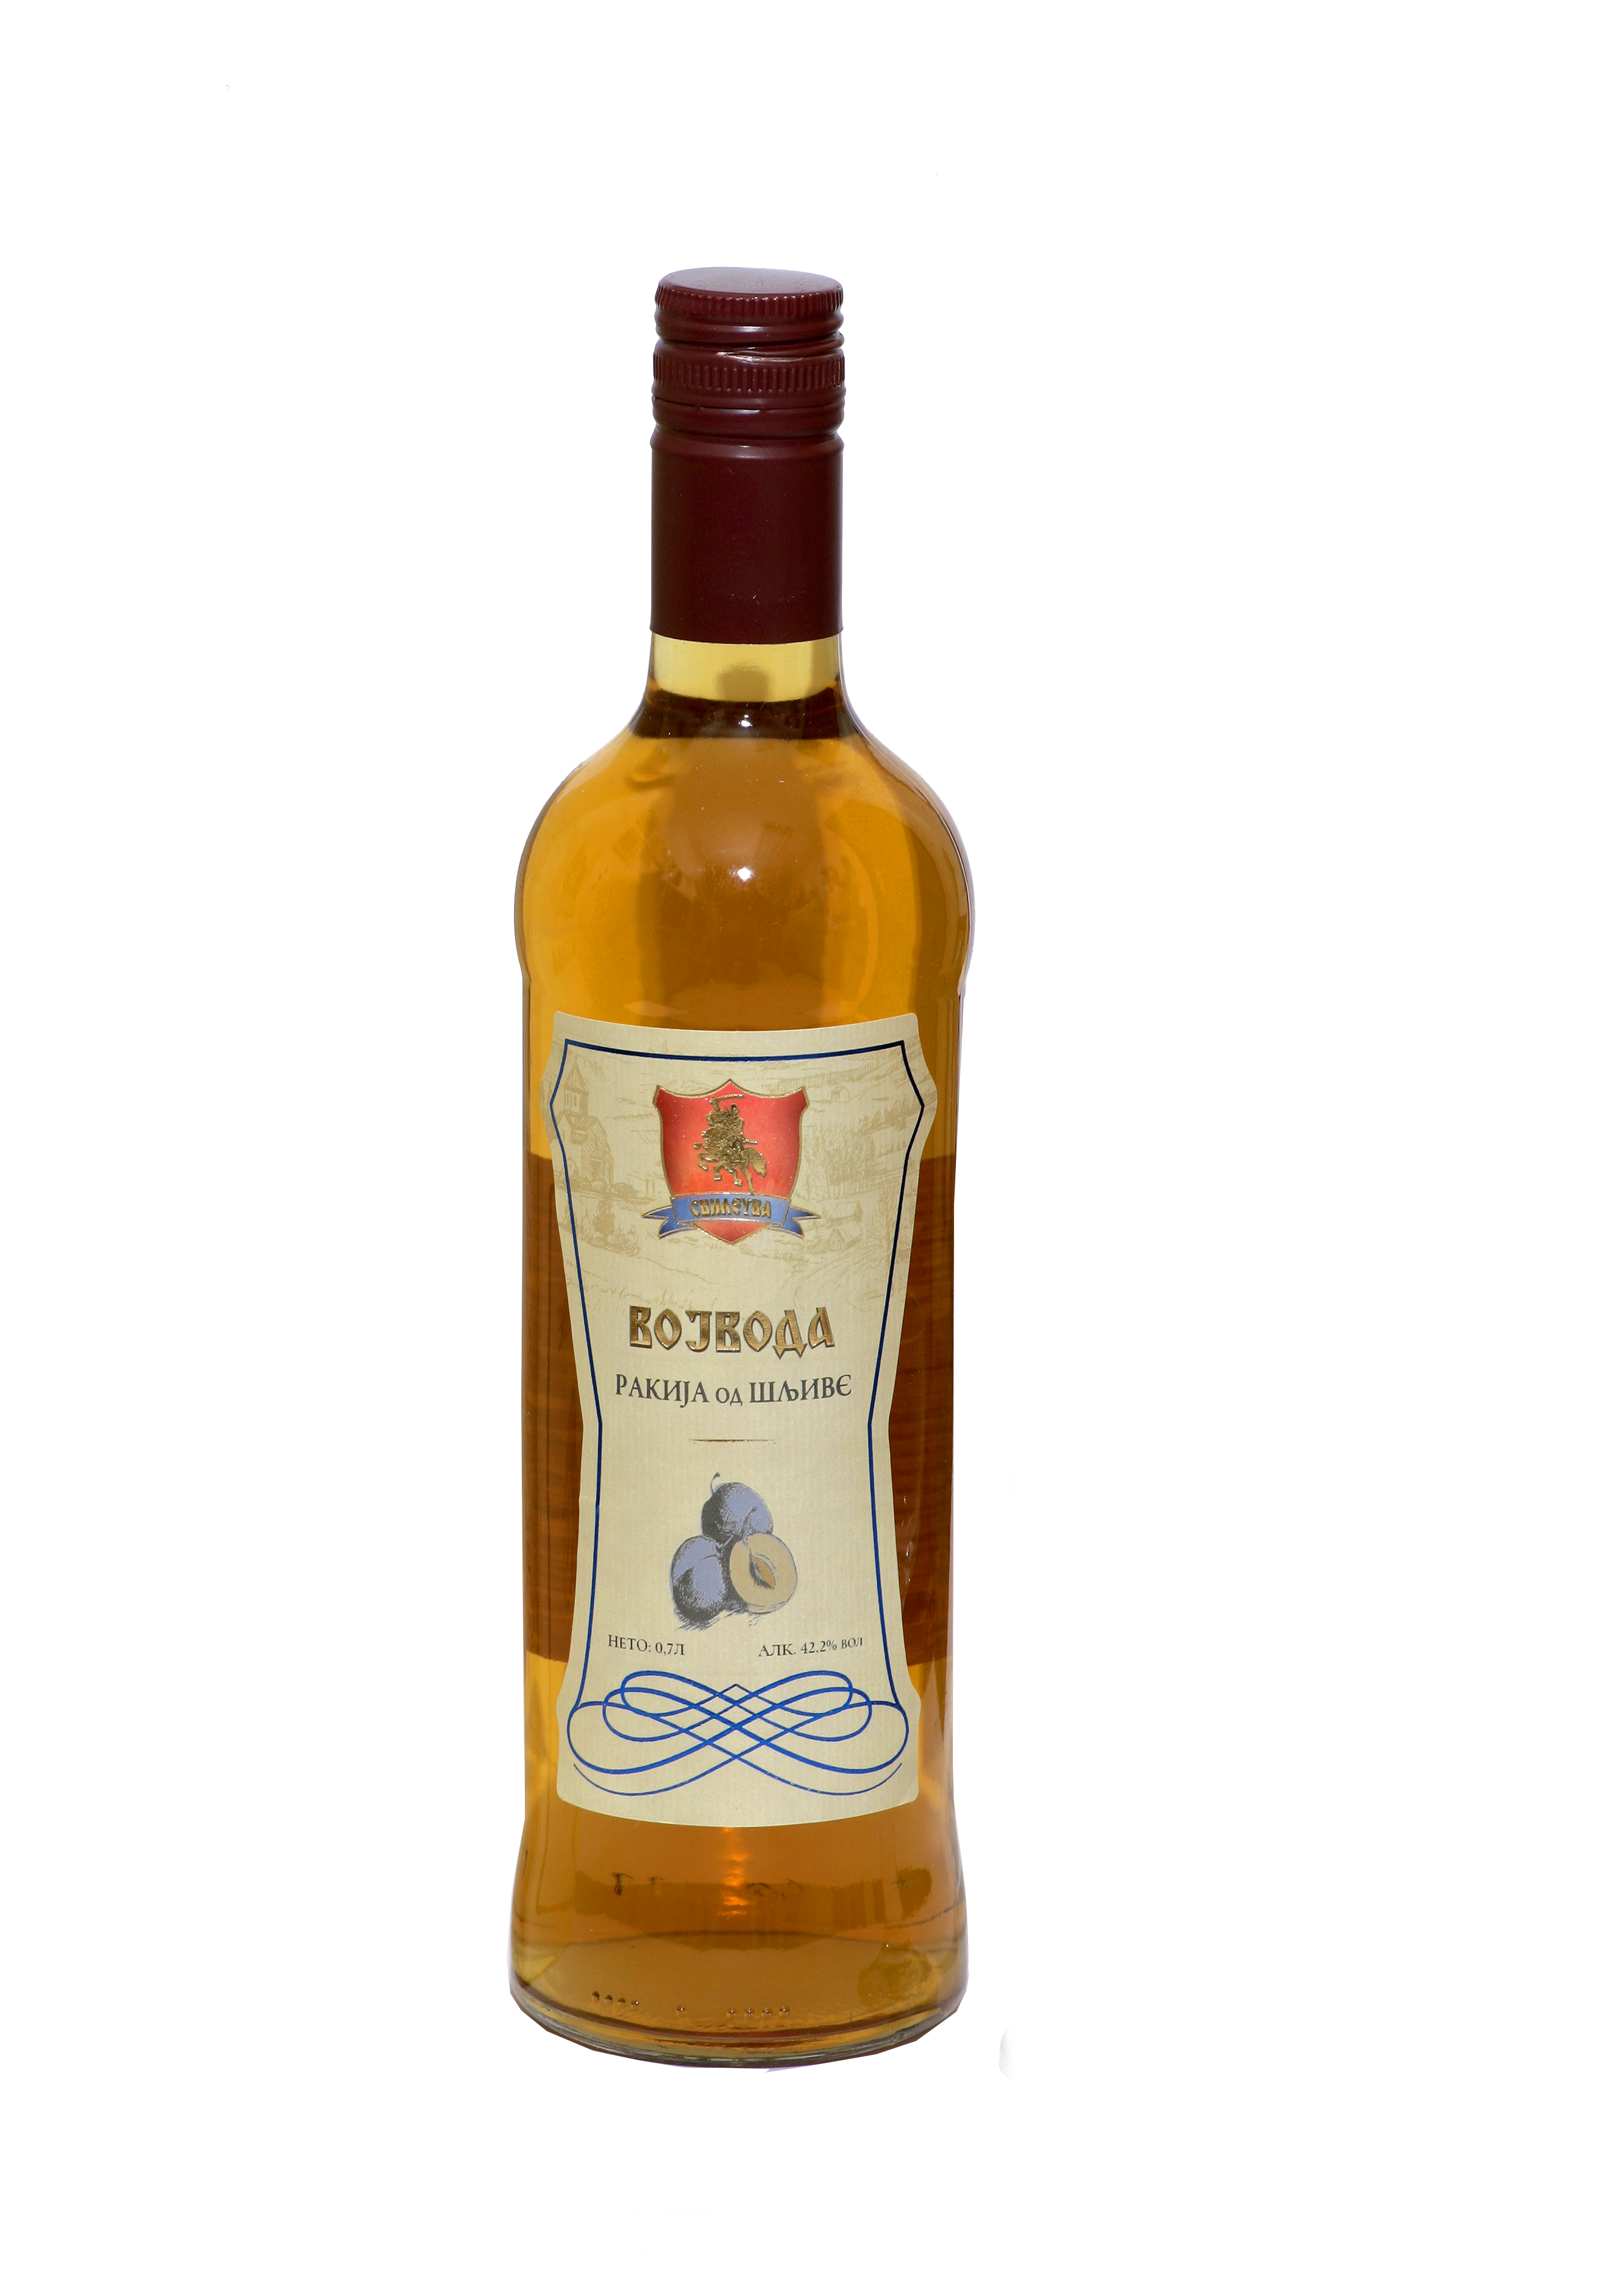 Supreme Plum Brandy 5 Years Old Vojvoda